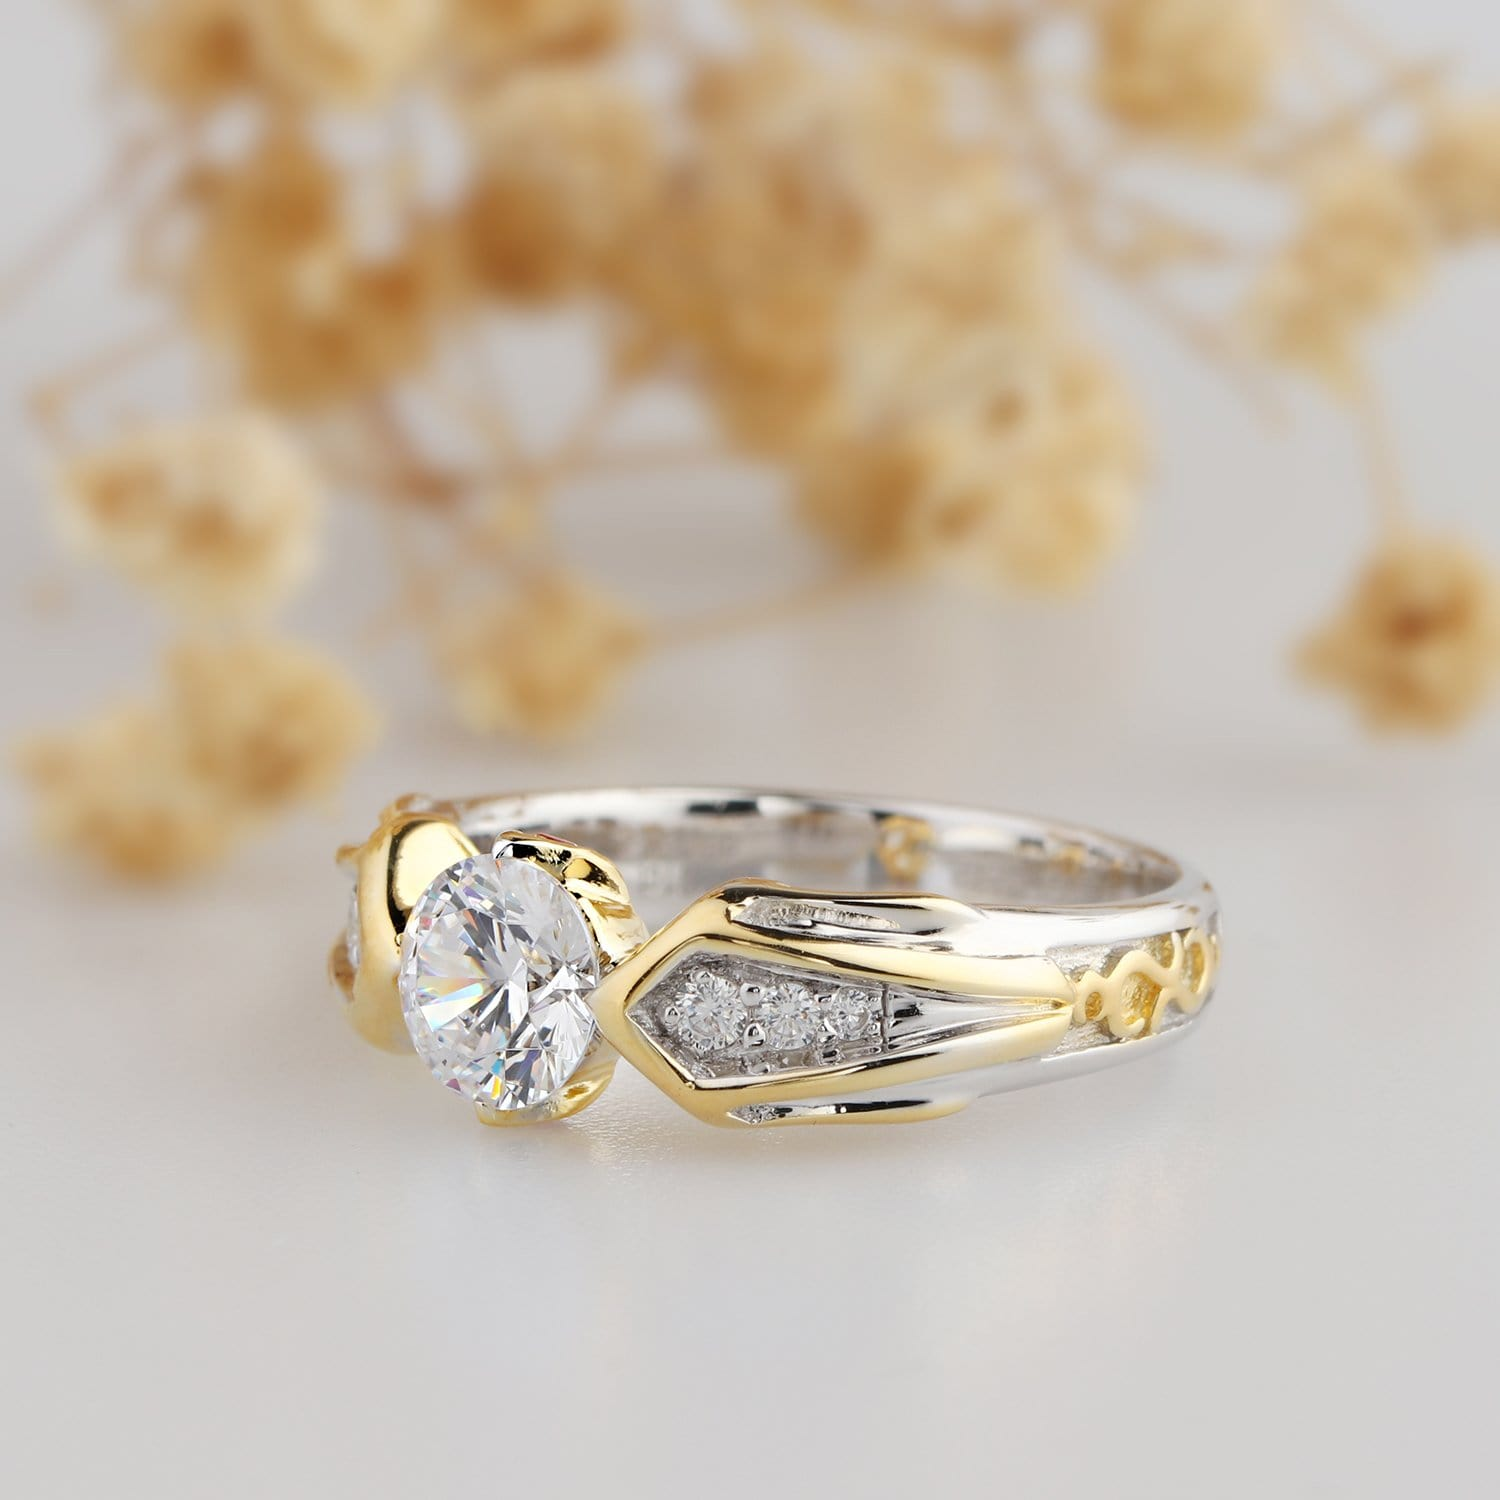 wedding s enement beautiful best diamond engagement the of man diamonds solitaire cathedral made style rings ring